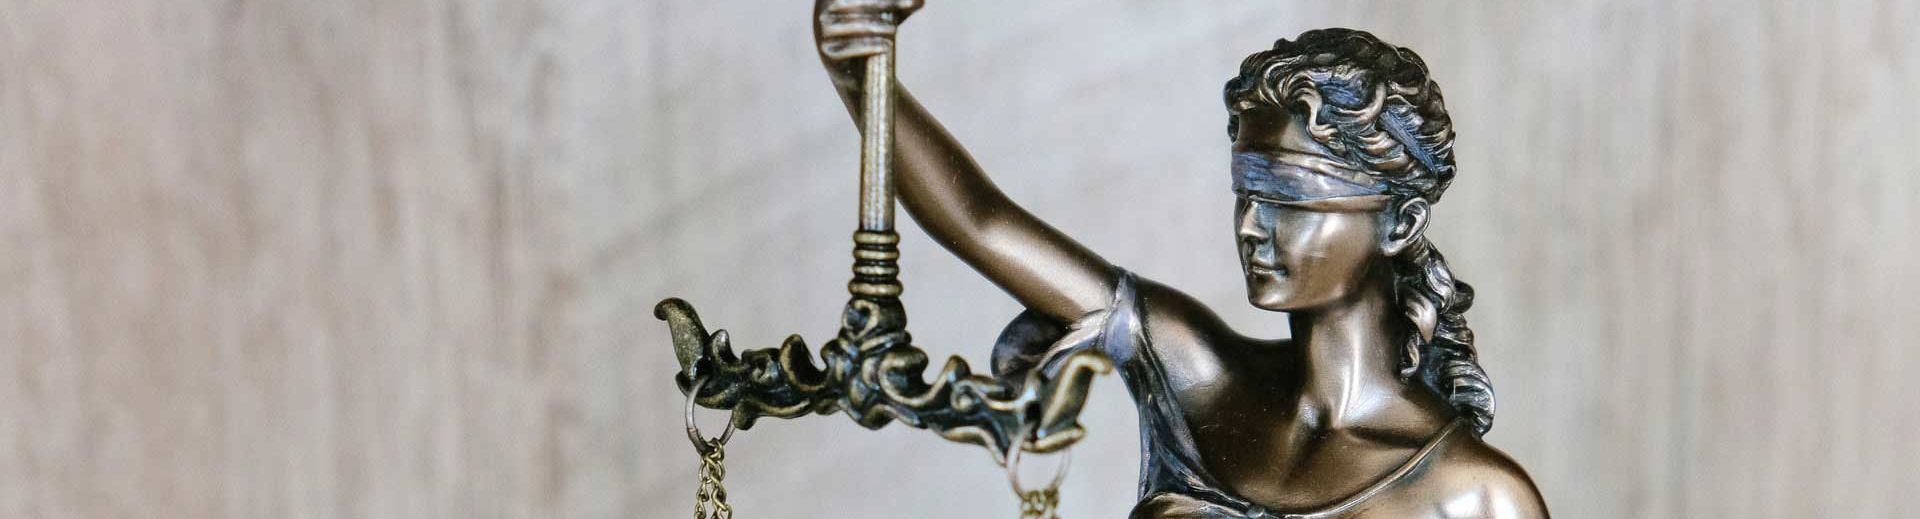 Cast metal figure of Lady Justice holding scales